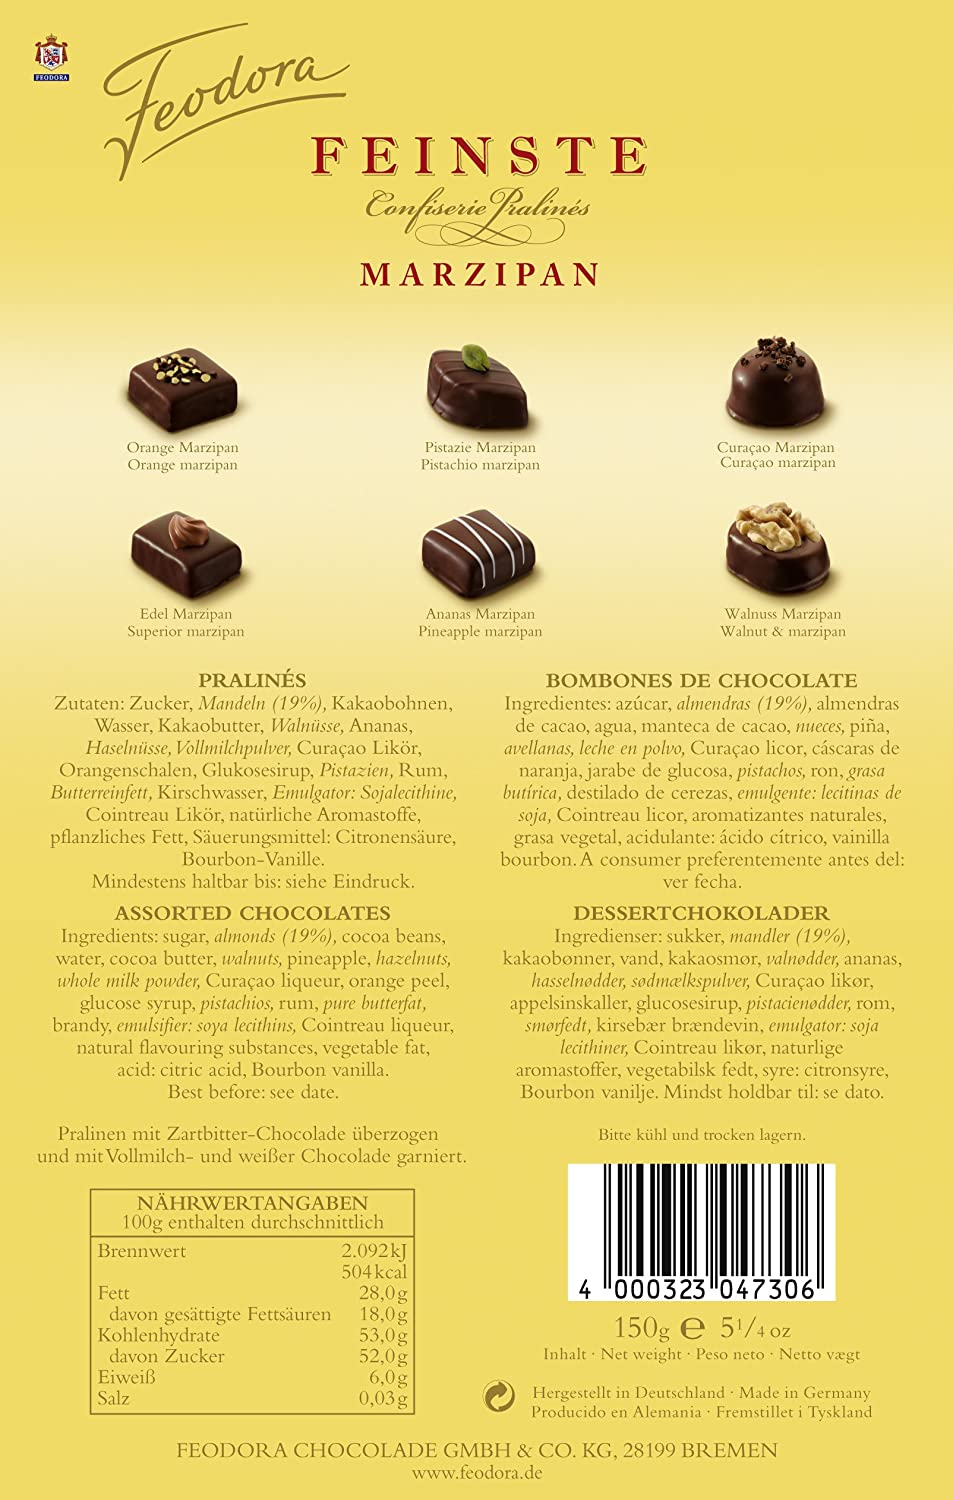 Amazon.com : Feodora Feinste Confiserie-Pralinés Marzipan, 1er Pack (1 x 150 g) : Chocolate Assortments And Samplers : Grocery & Gourmet Food